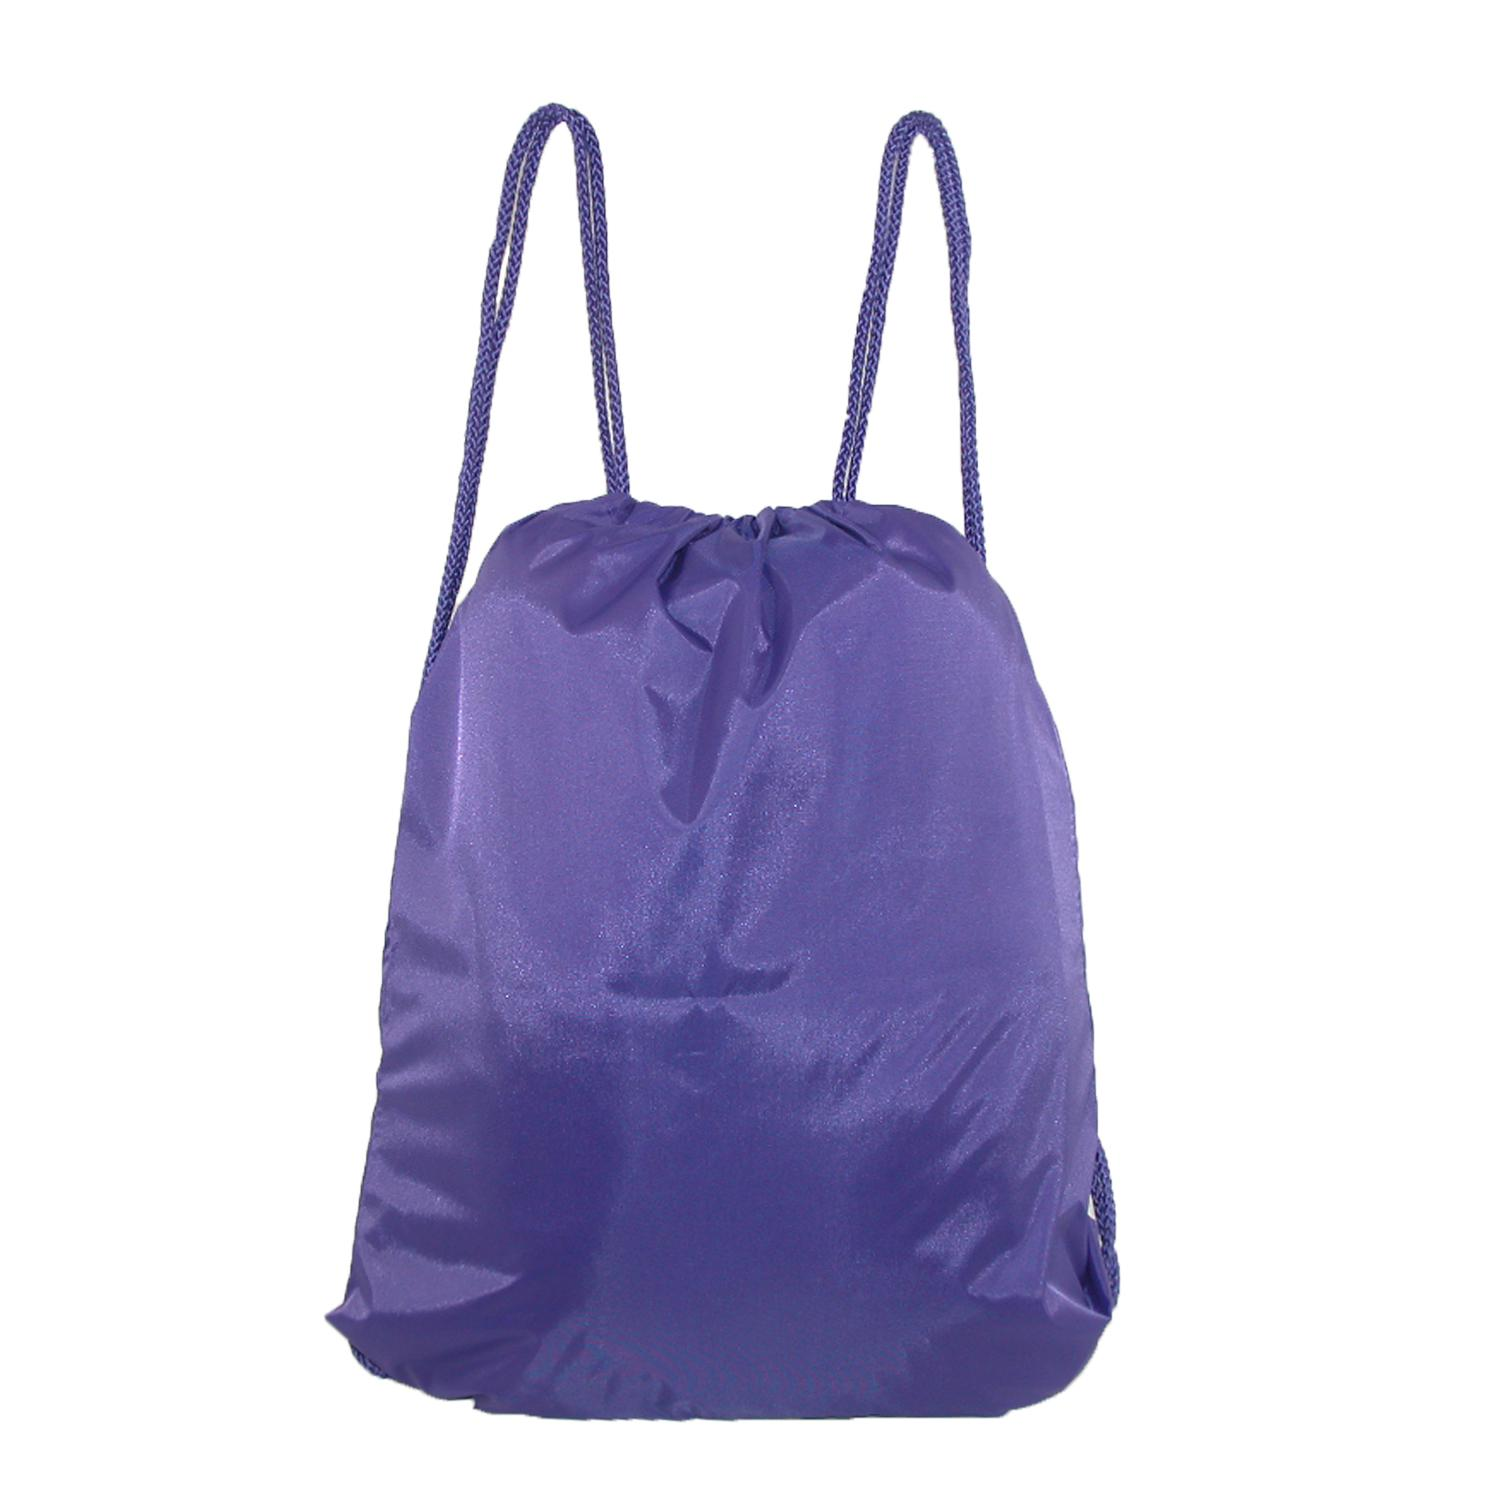 Ctm Large Drawstring Backpack Book Bag Carry All